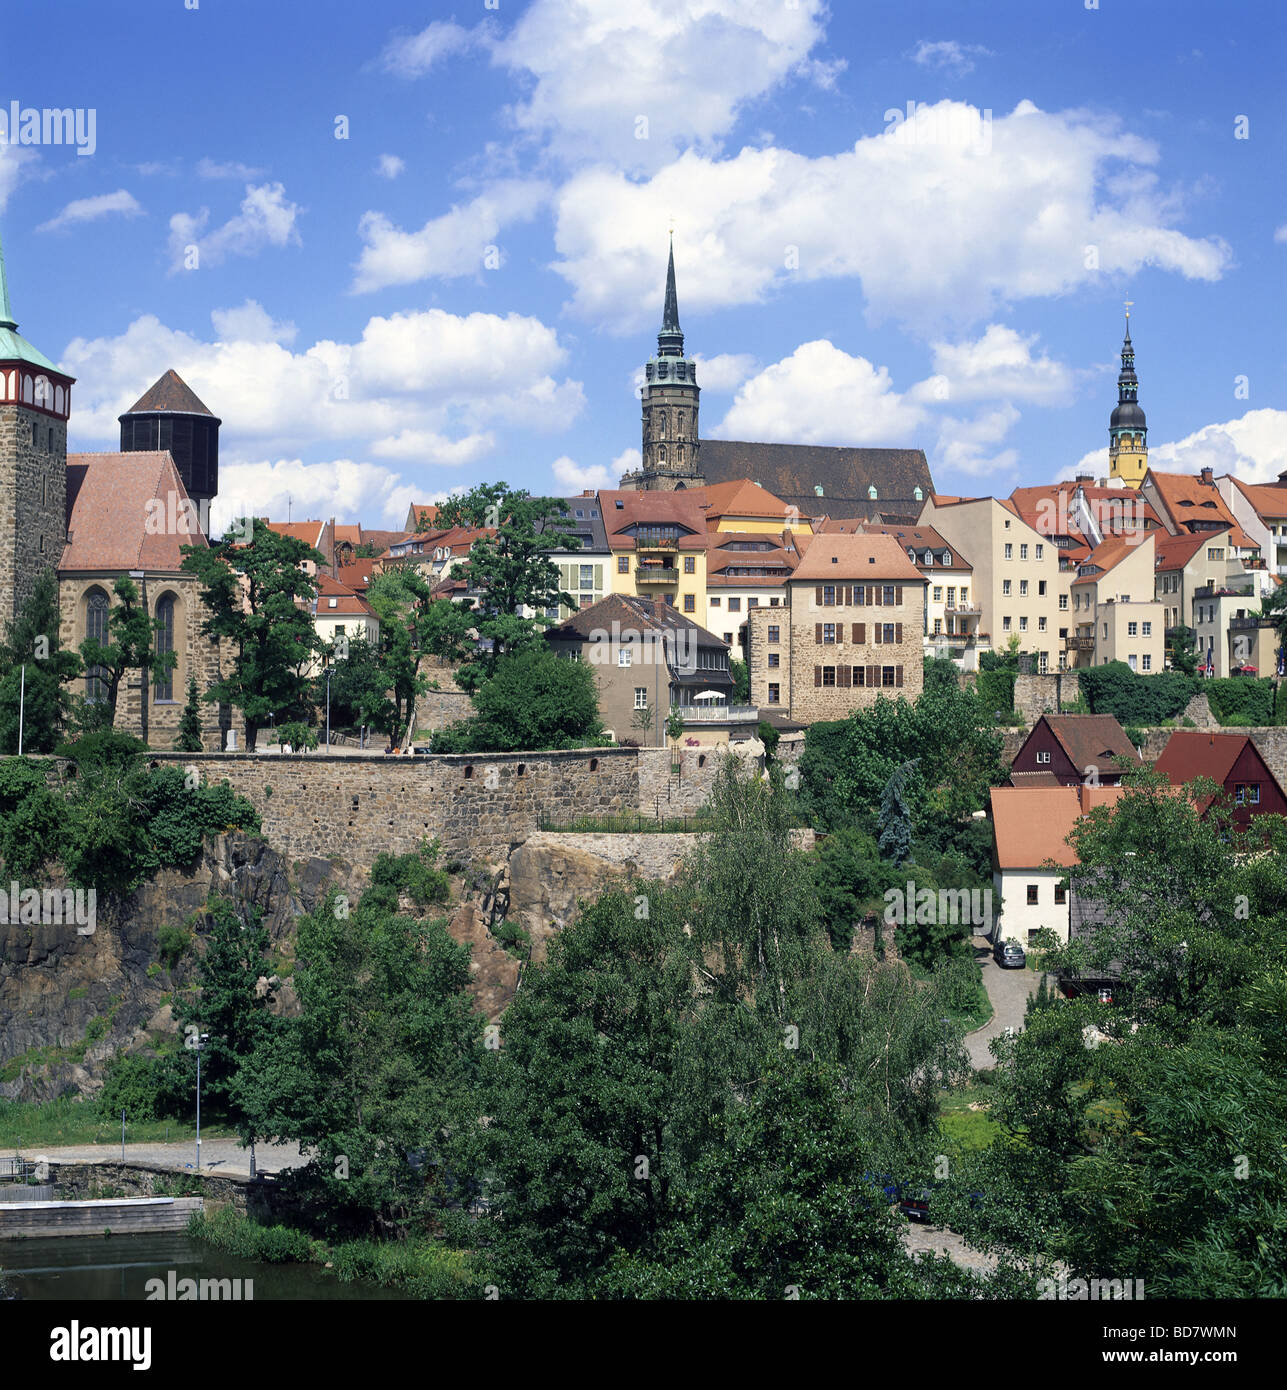 geography / travel, Germany, Saxony, Bautzen, city views, cityscape view from the Friedensbruecke towards the town, Stock Photo